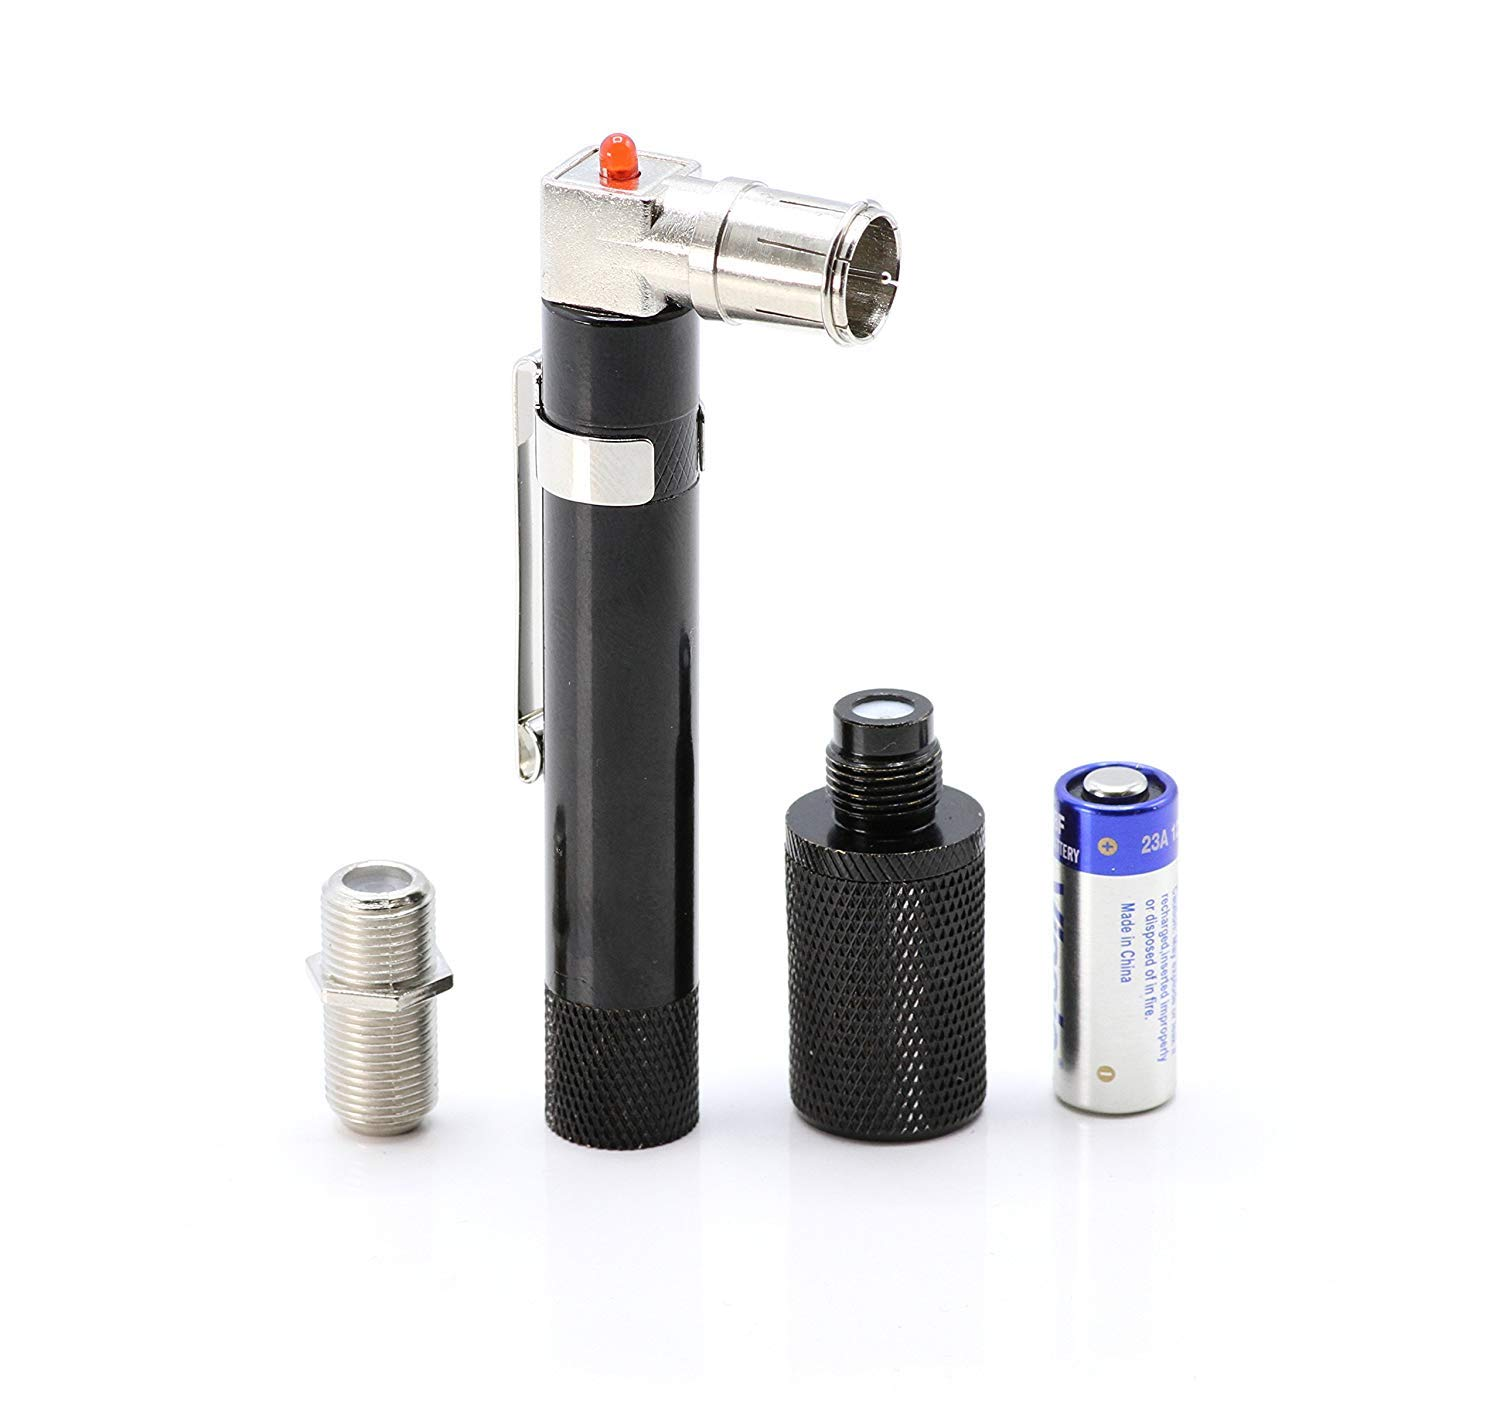 The Cimple Co Coaxial Coax Pocket Continuity Tester